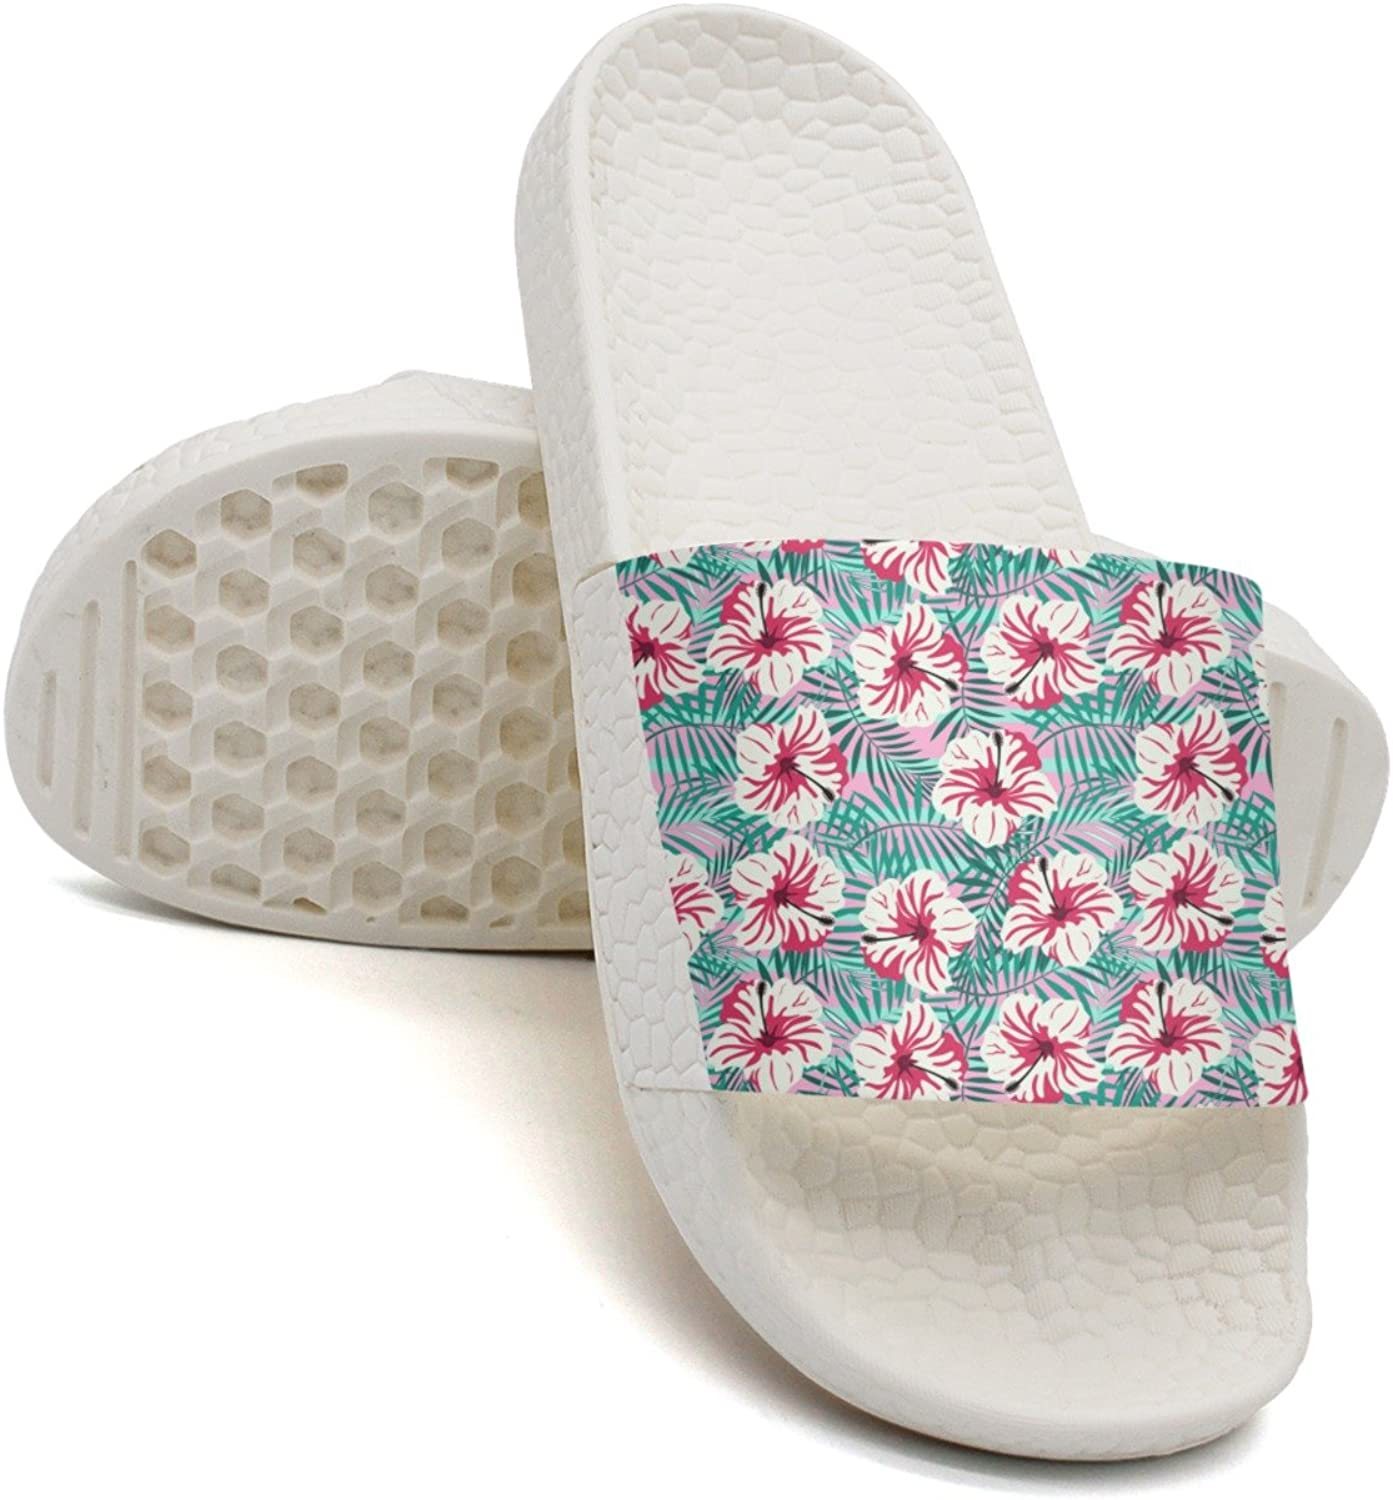 Qiopw rtw Bathroom Shower Non-Slip Sandal Rtopical Pattern On Pink Indoor Slipper shoes for Womens Ladies